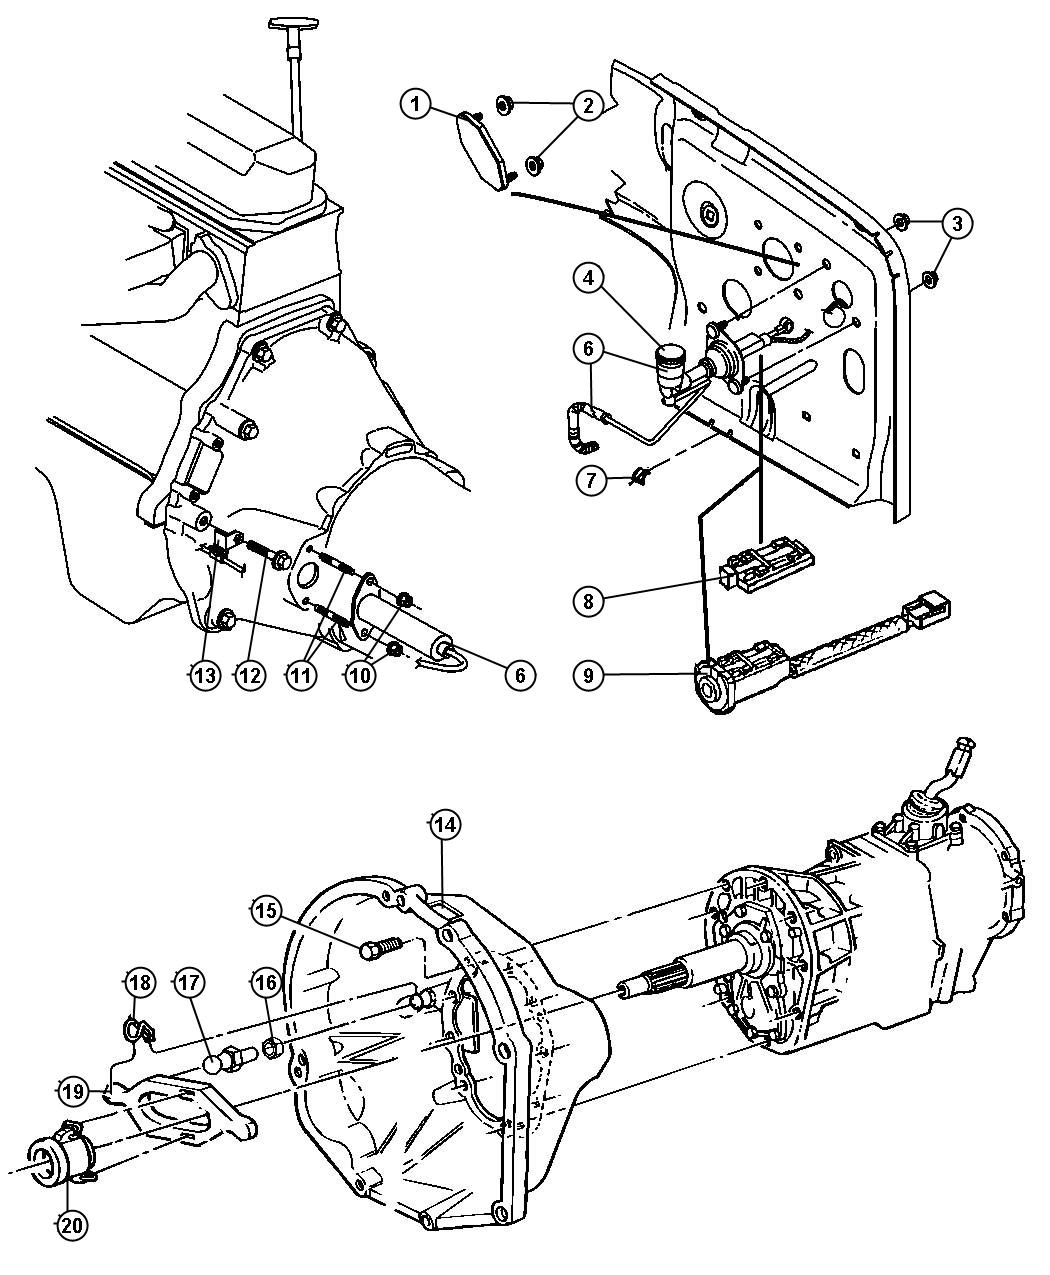 light wiring diagram as well 1993 honda accord wiring harness diagram